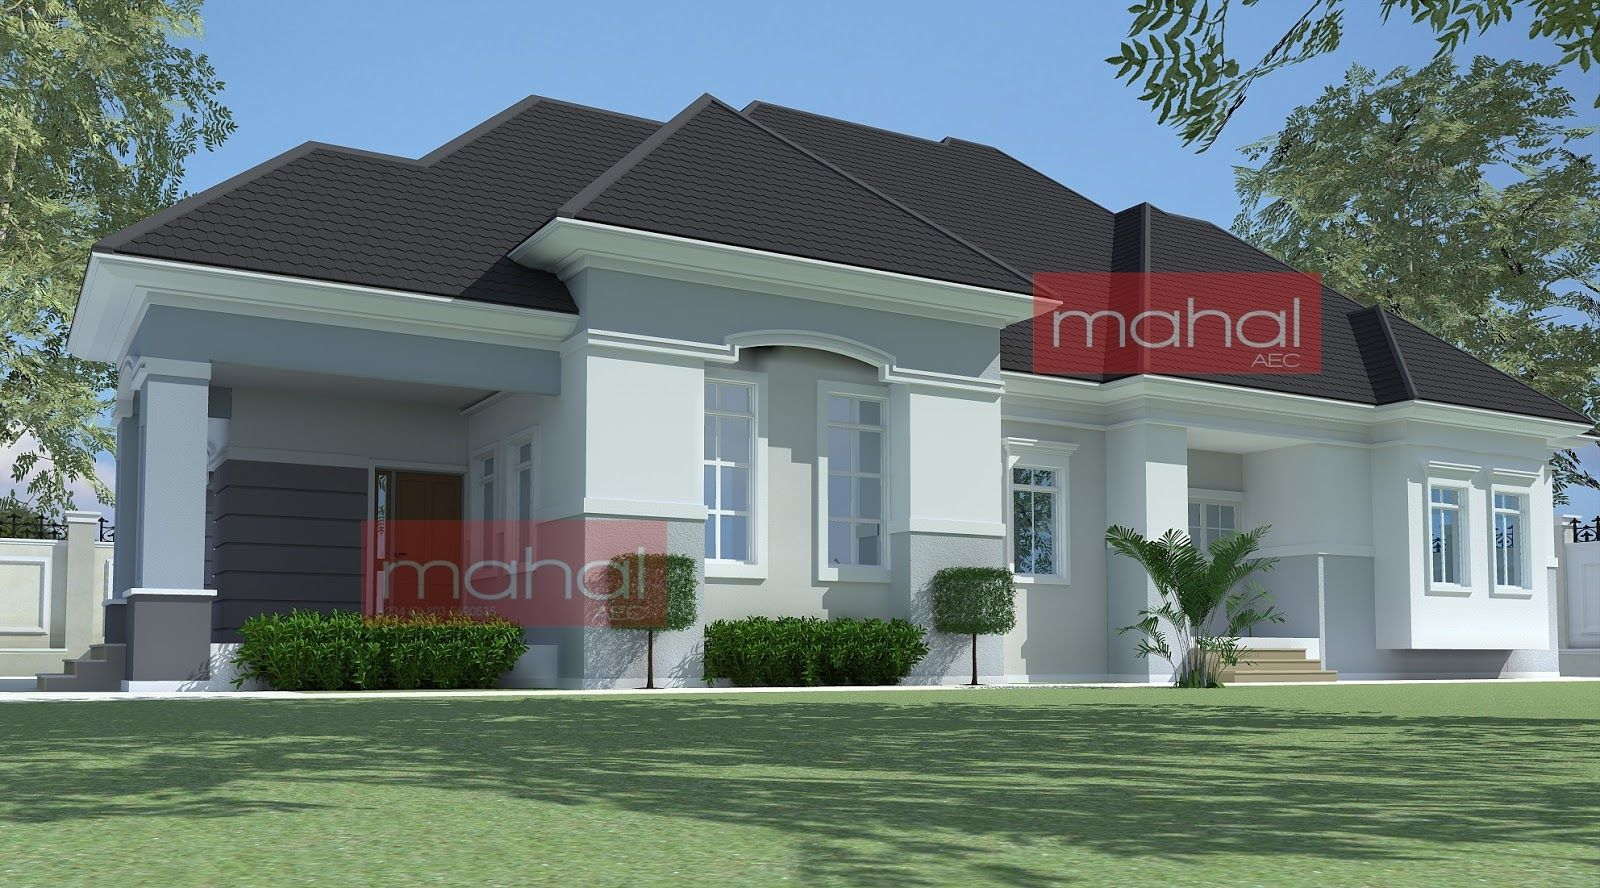 4 bedroom bungalow plan in nigeria 4 bedroom bungalow for Modern bungalow floor plans